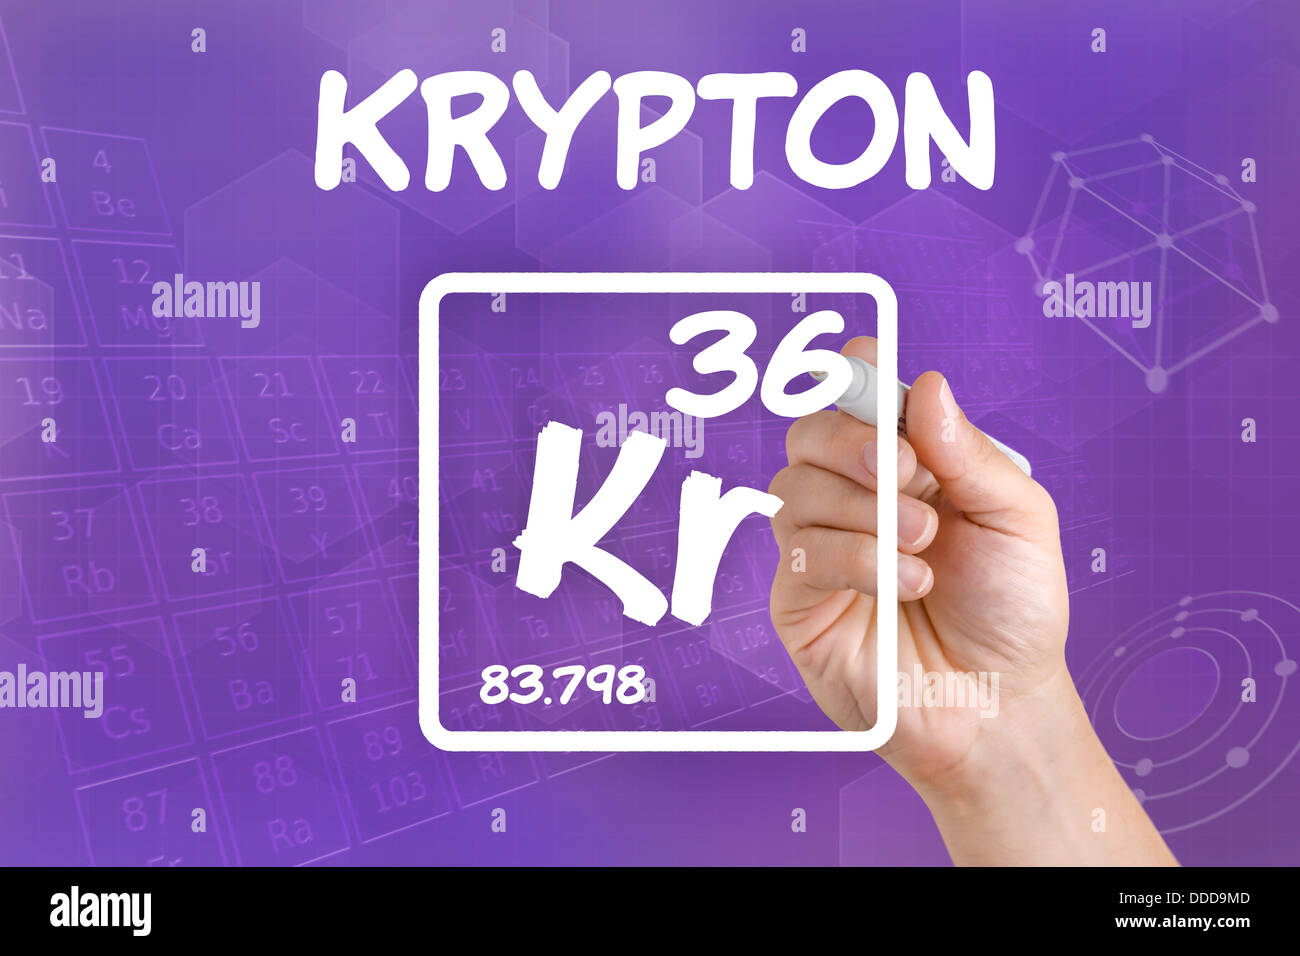 Symbol for the chemical element krypton stock photo royalty free symbol for the chemical element krypton buycottarizona